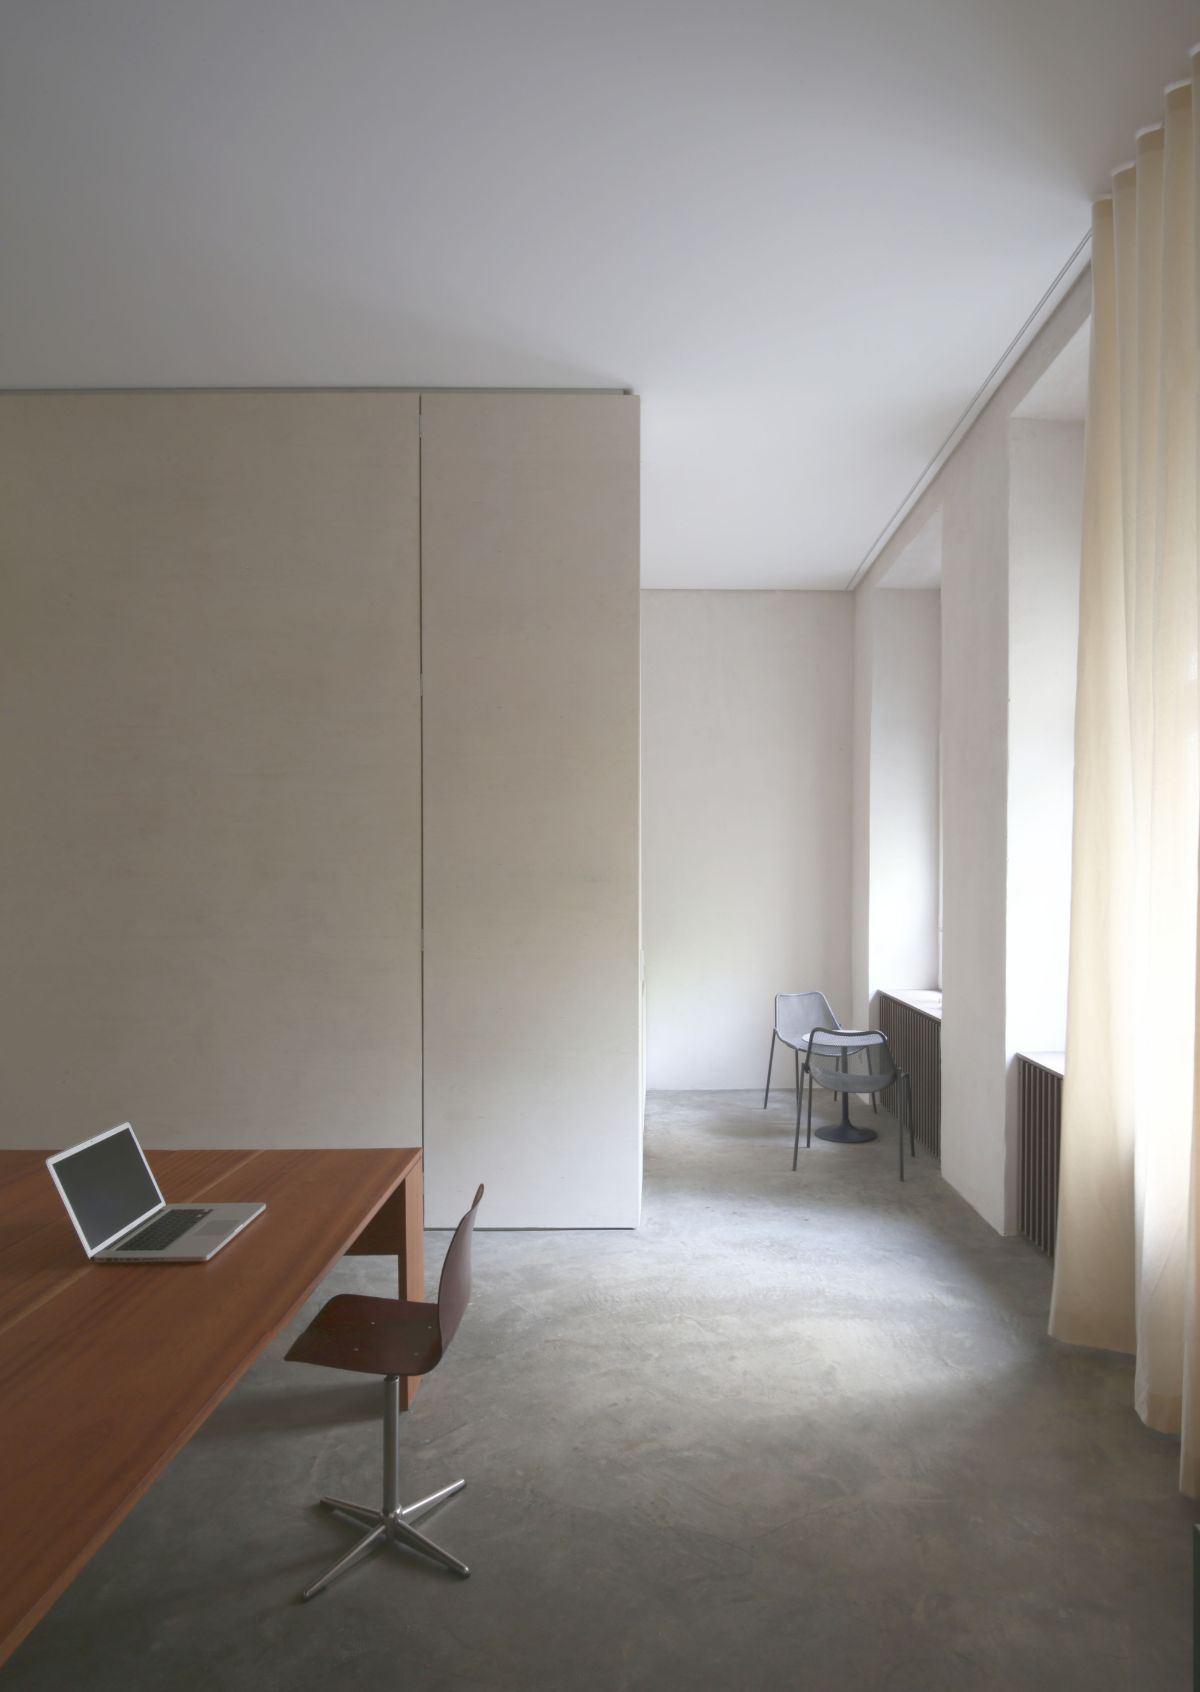 Seamus Kowarzik Studio in Berlin